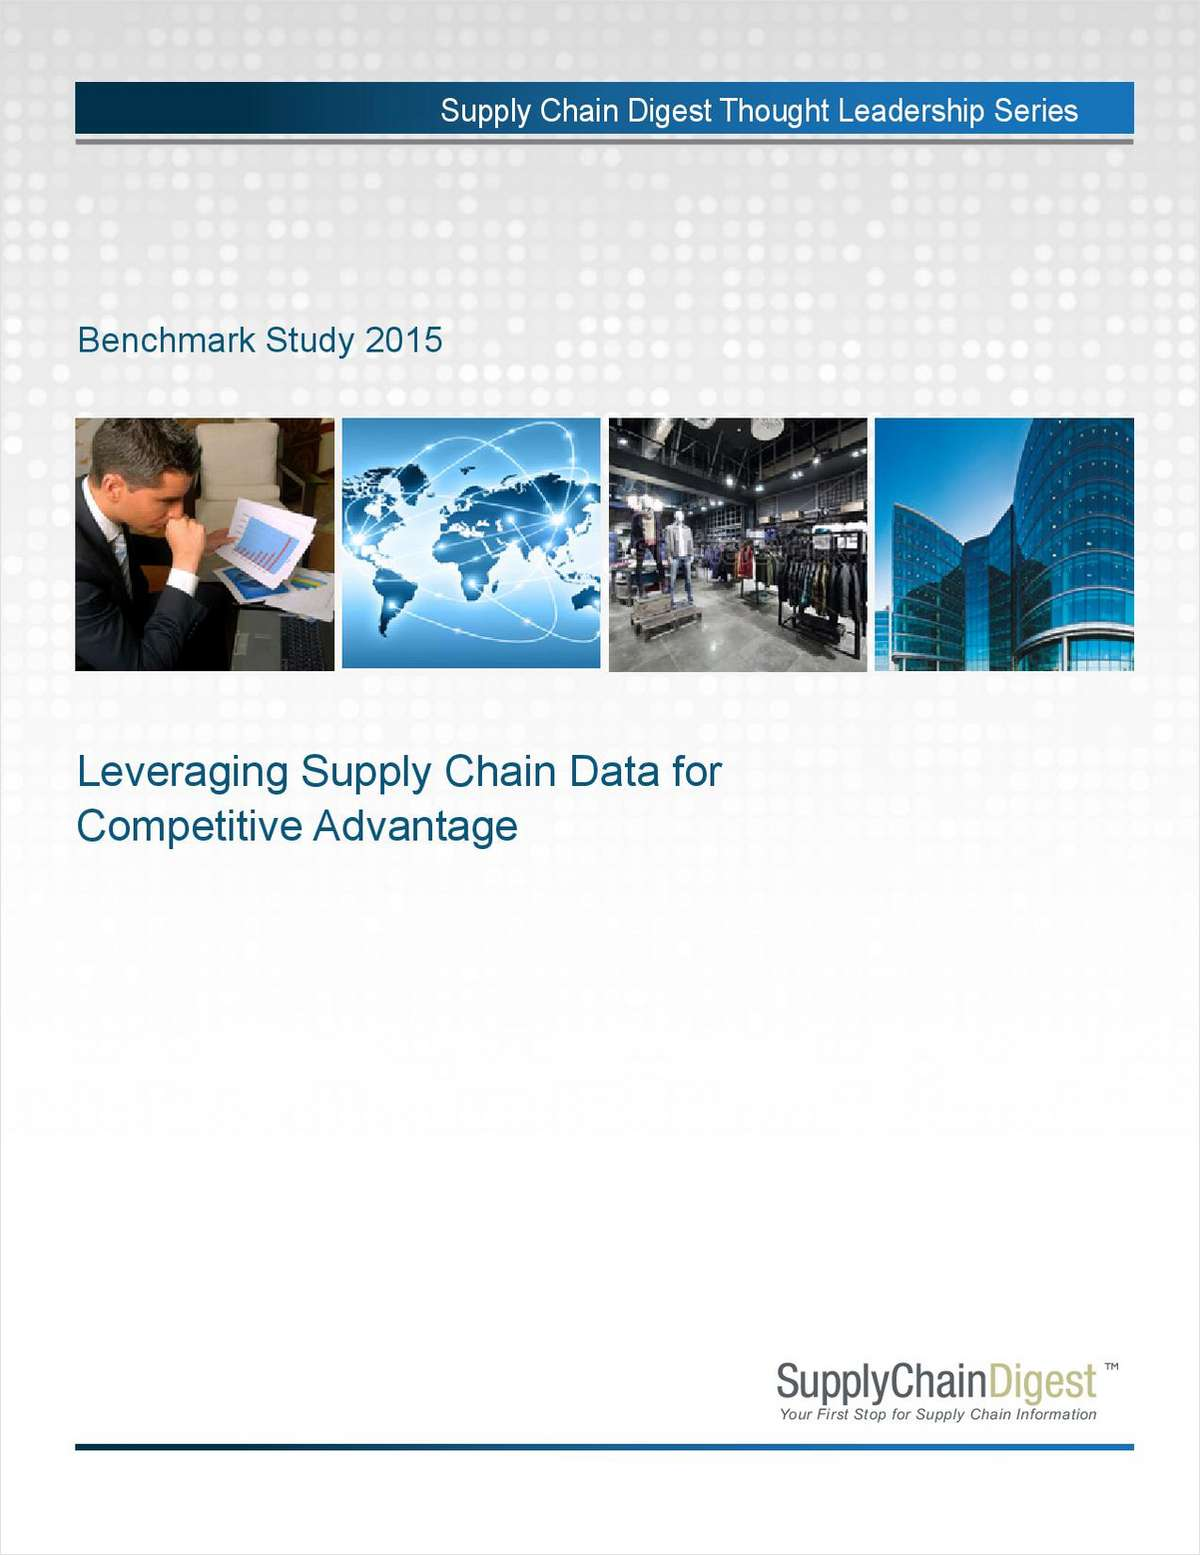 Leveraging Supply Chain Data for Competitive Advantage